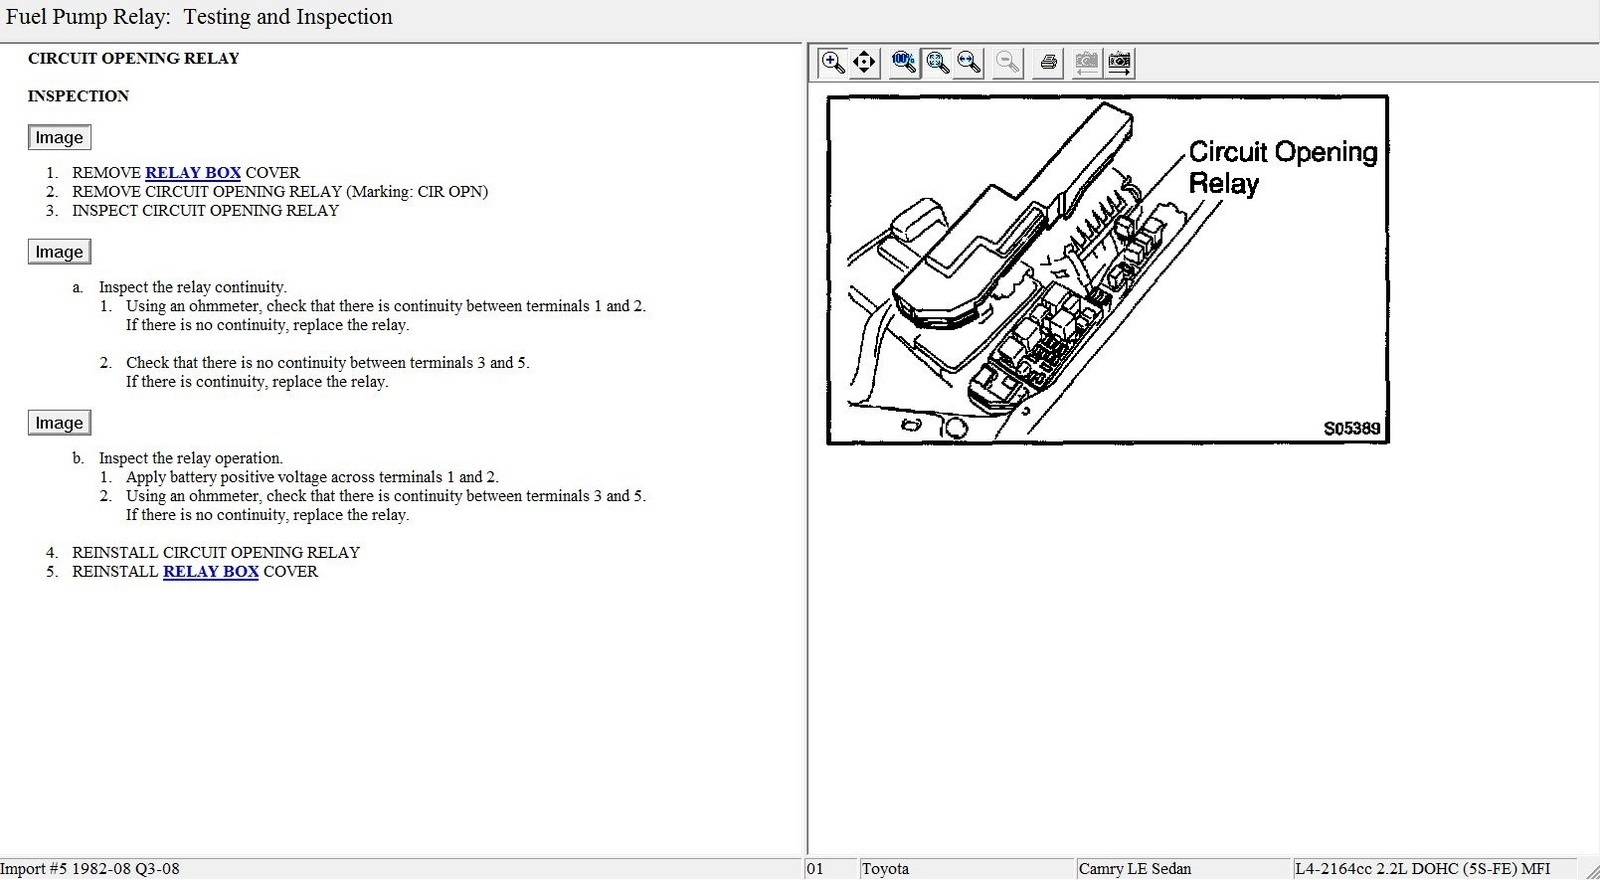 2010 f150 stereo wiring diagram 06 chevy silverado toyota camry questions - where is fuel pump relay 2001 4 cyl cargurus